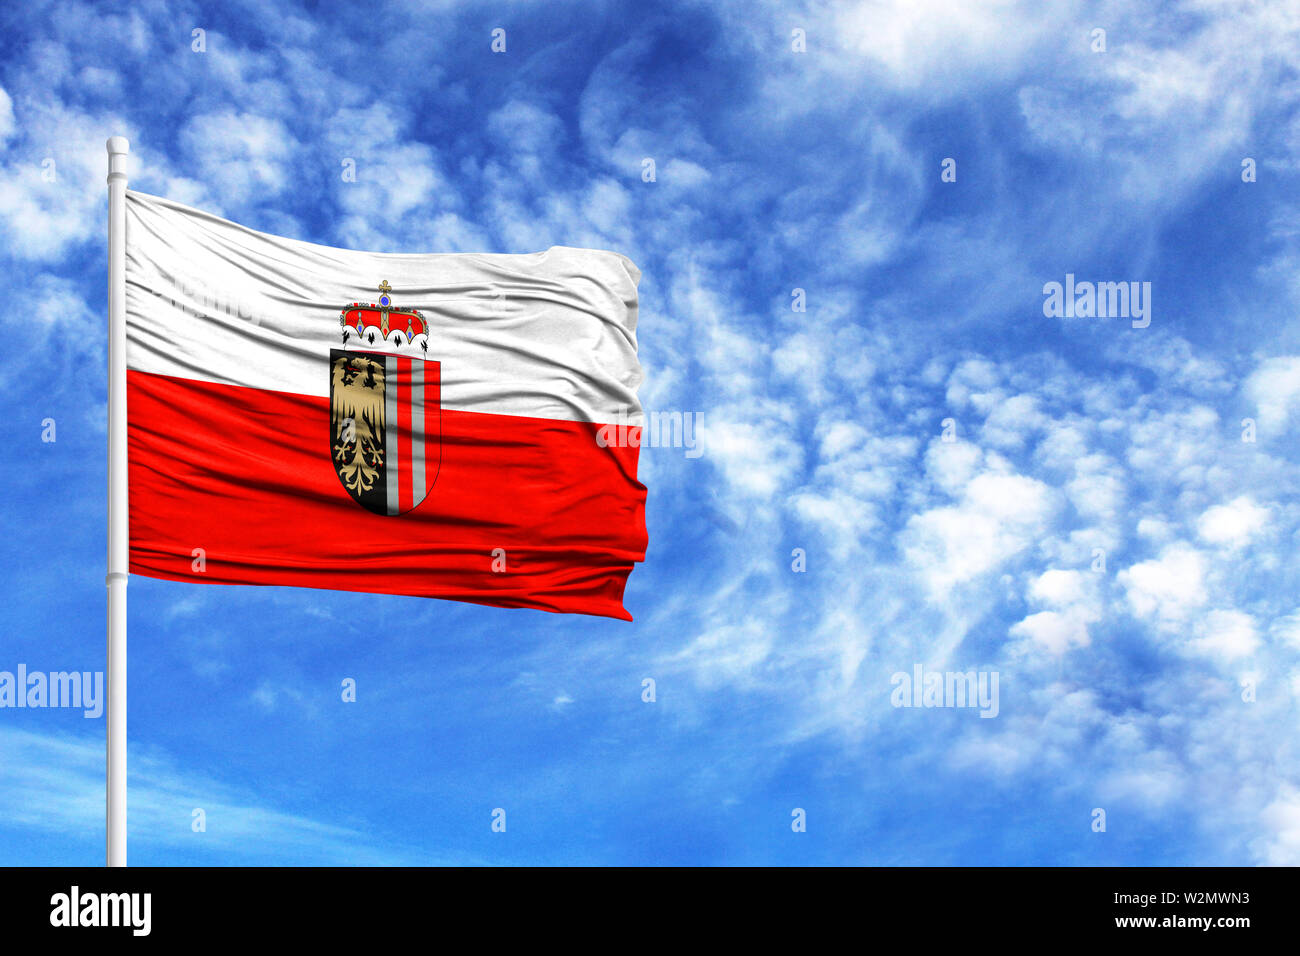 National flag of Upper Austria on a flagpole in front of blue sky - Stock Image